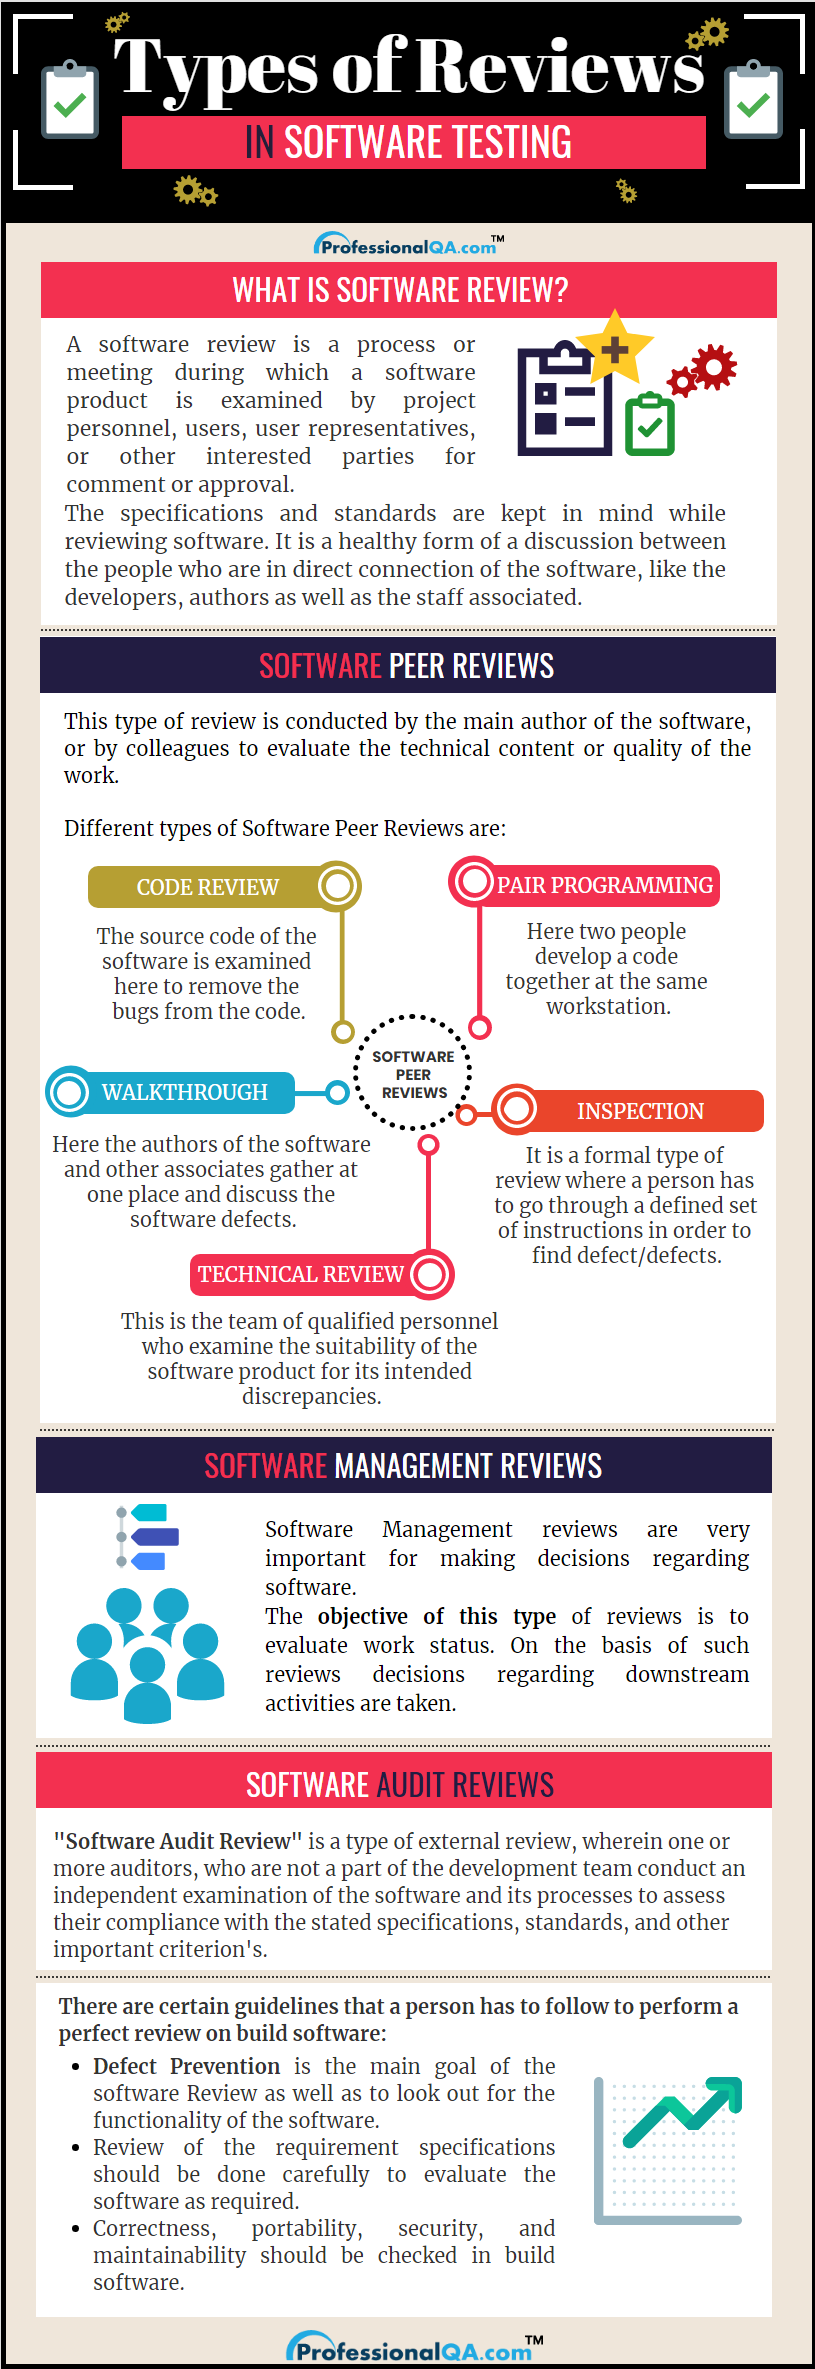 Types of Software Review Infographics